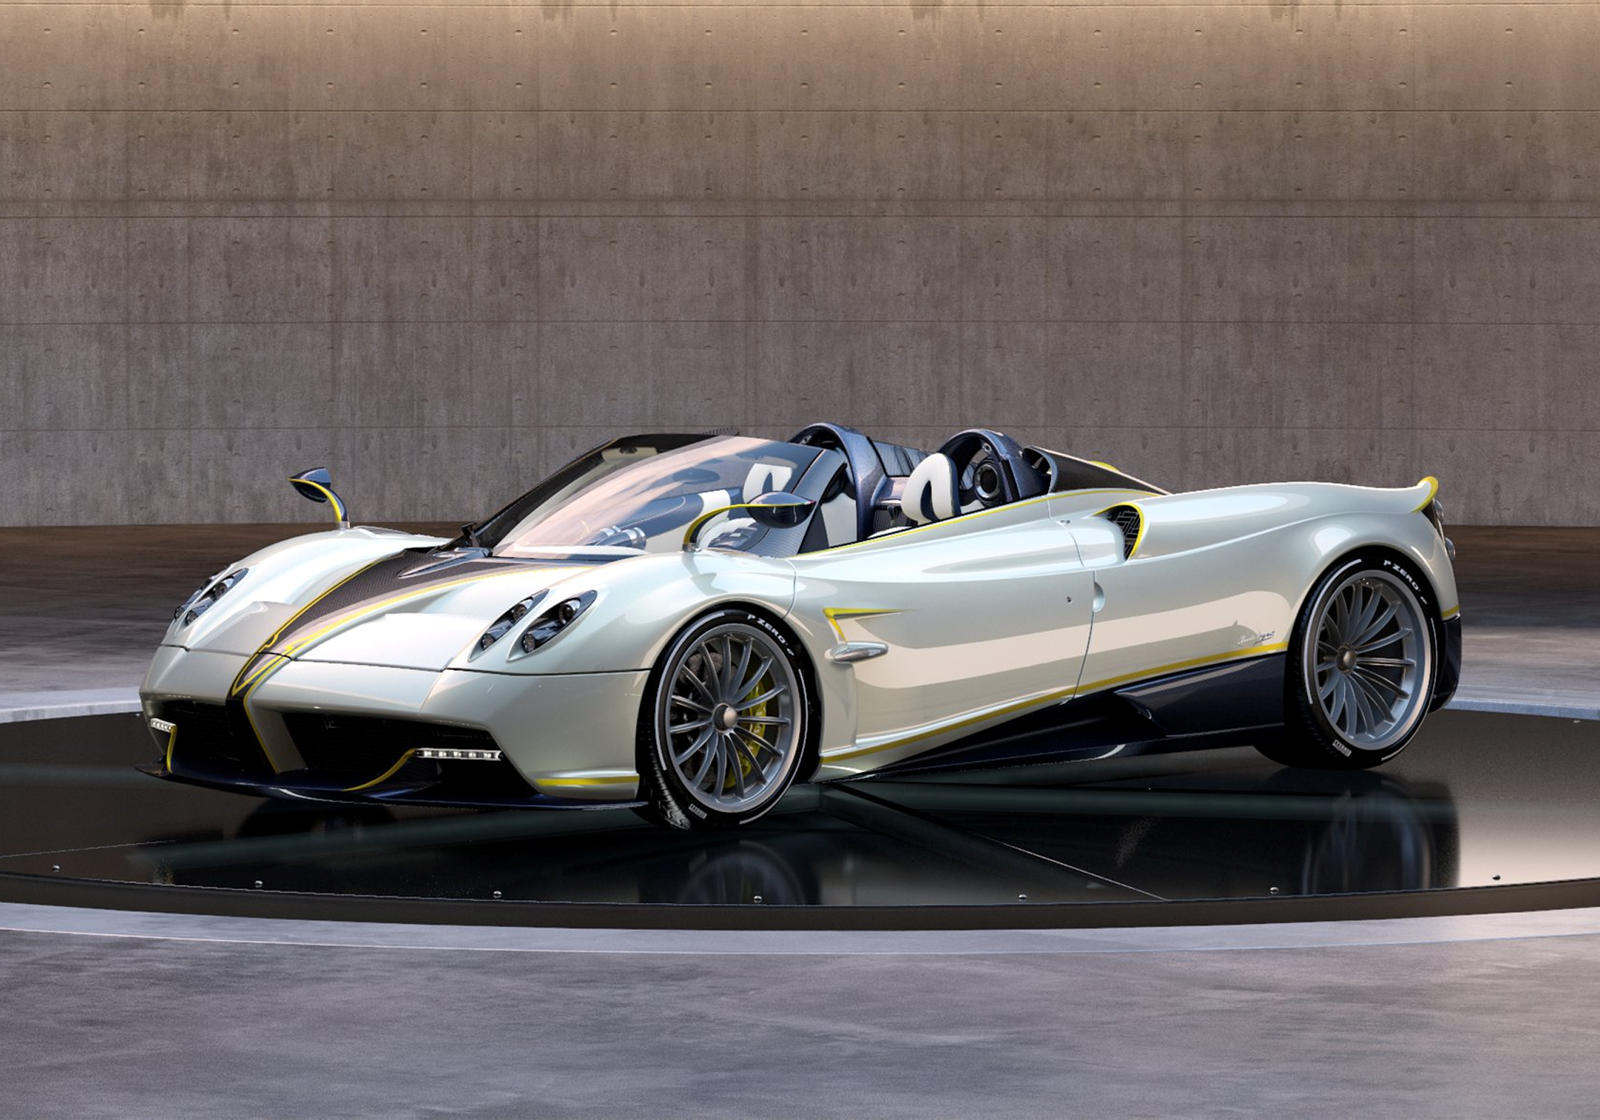 Italian car manufacturer Pagani has come to the Concours d'Elegance in California with a special edition of its Huayra roadster